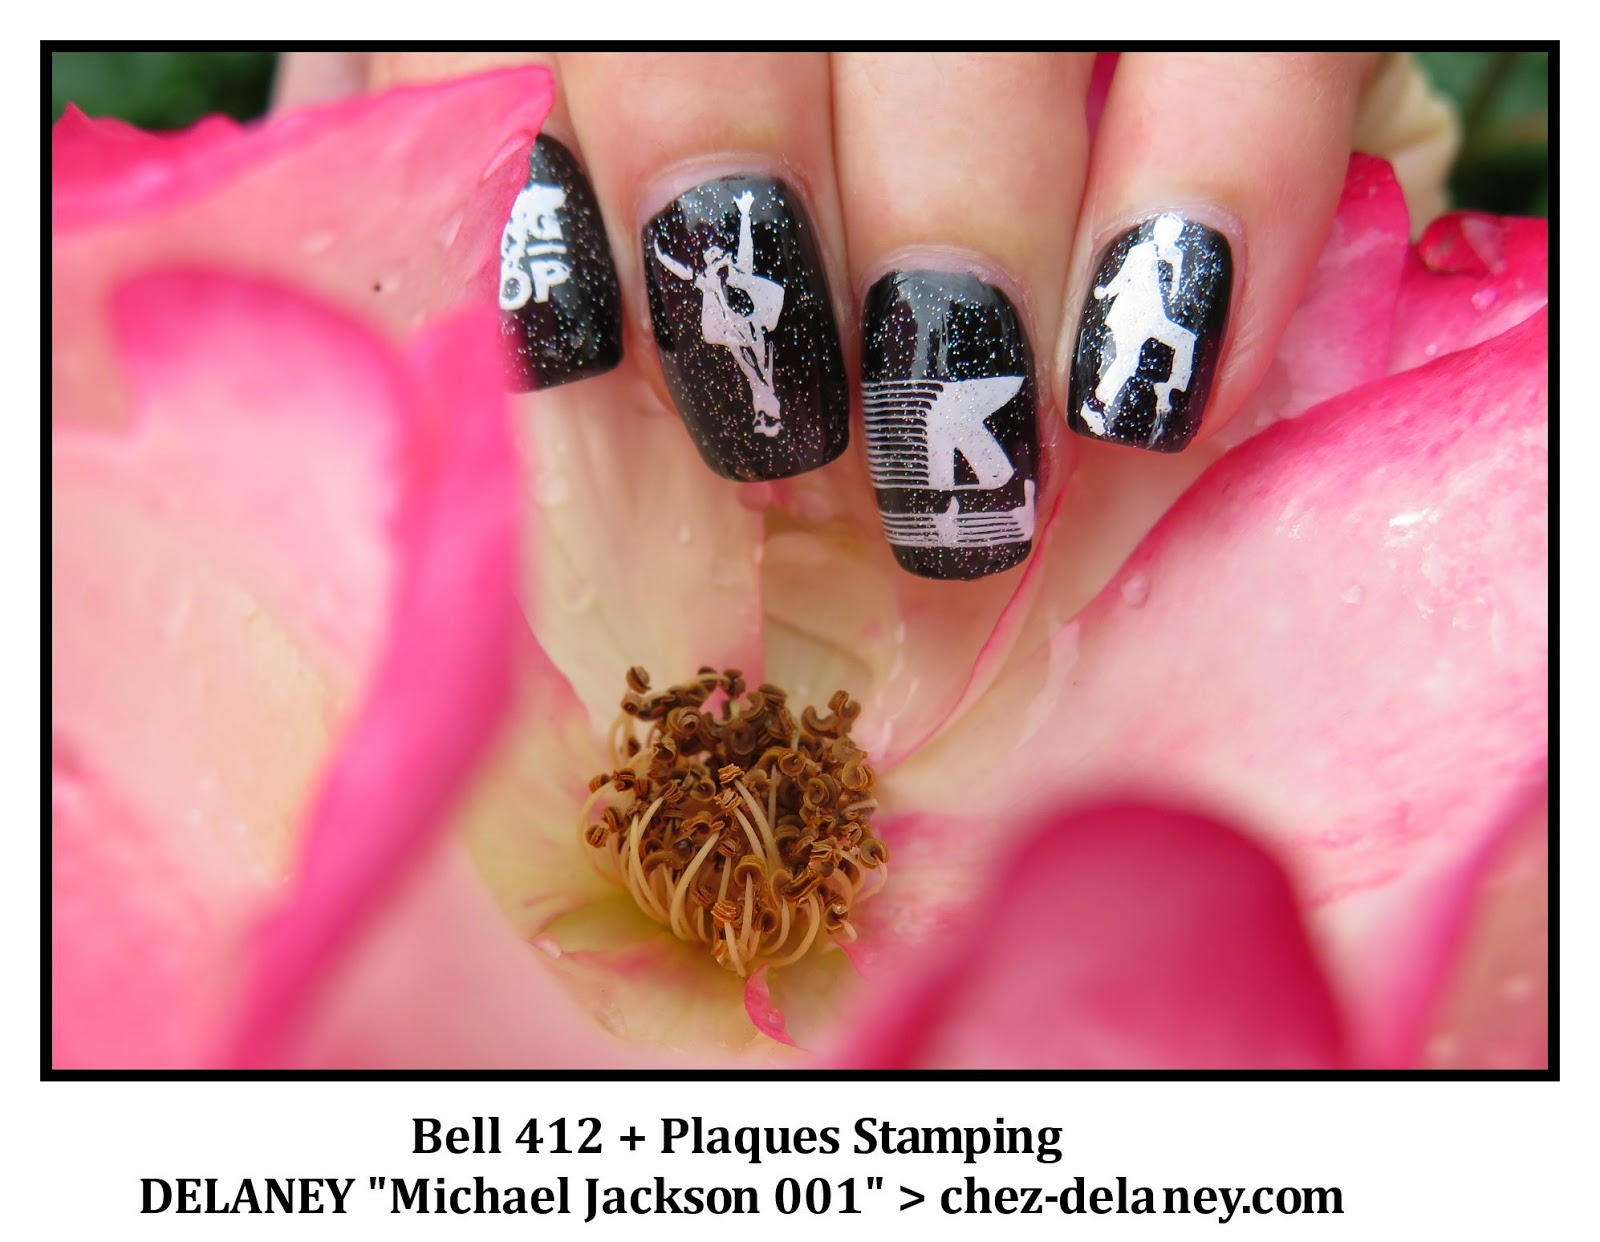 Nail art michael jackson plaque stamping delaney chez delaney nail art michael jackson plaque stamping delaney prinsesfo Gallery